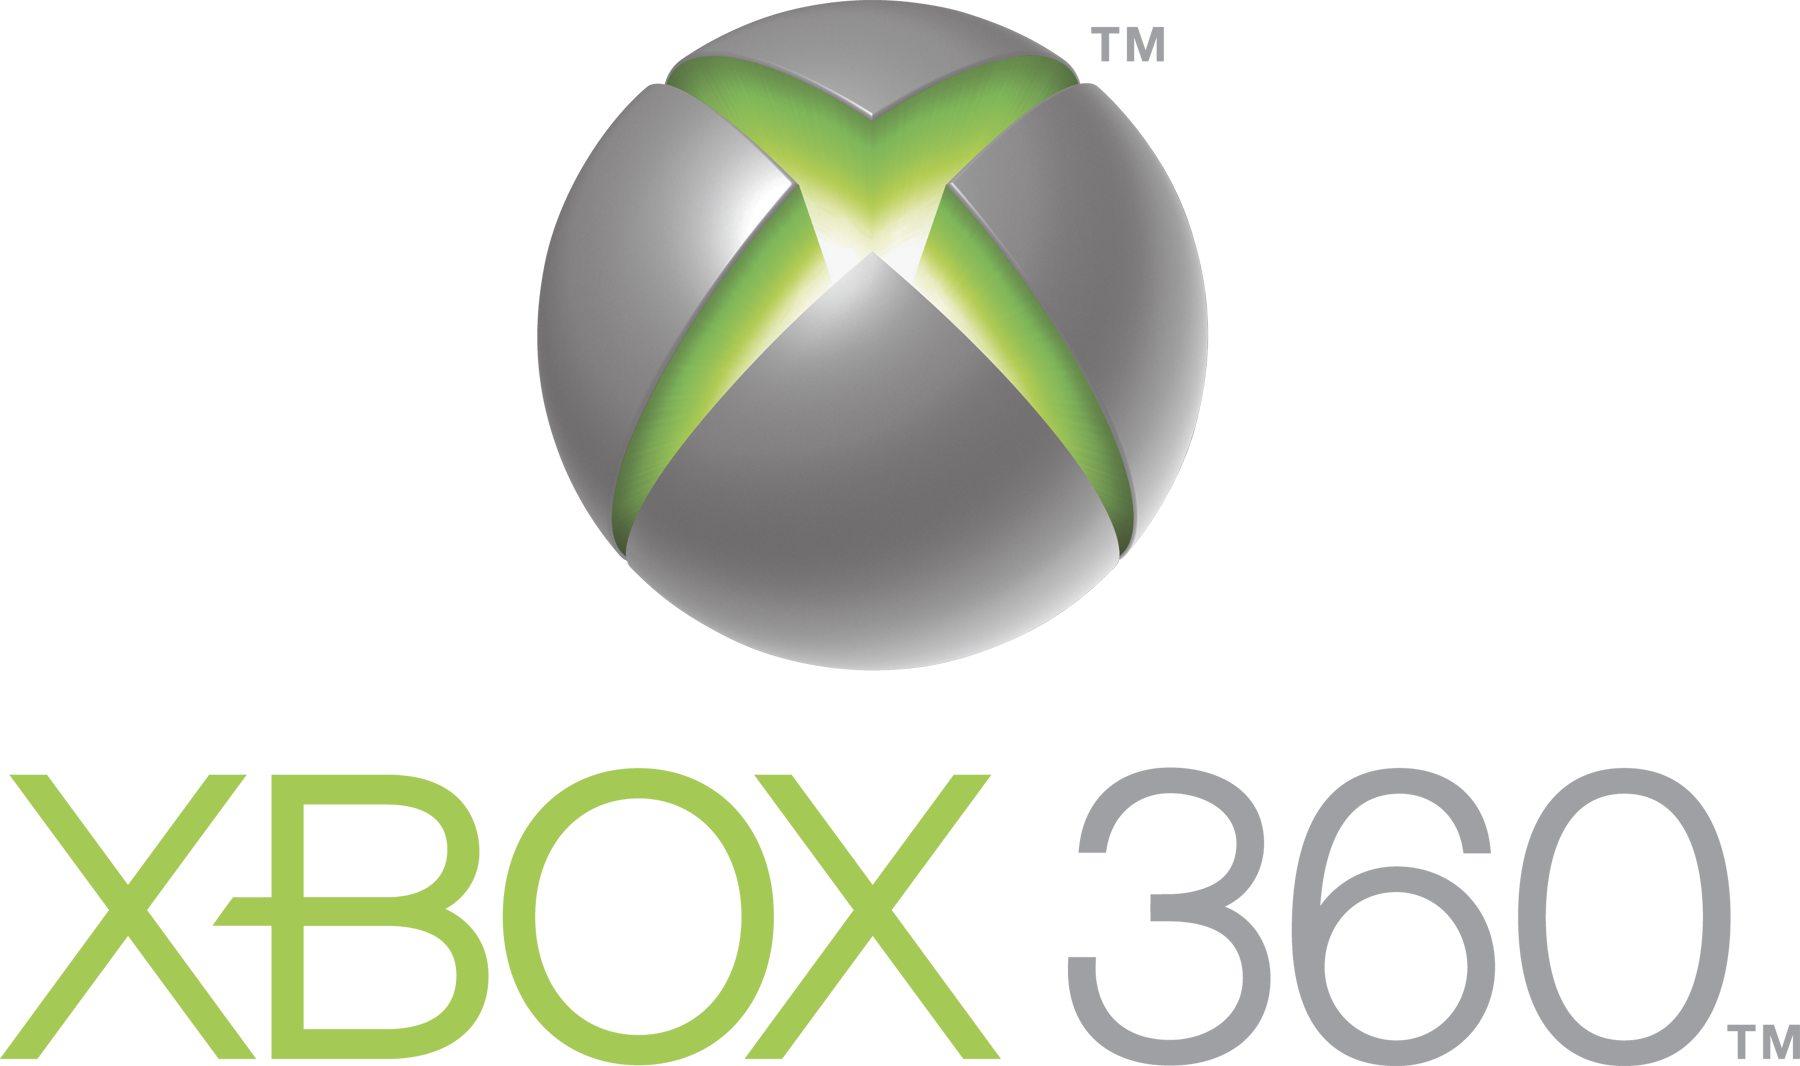 13 Xbox Live Icon Transparent Images